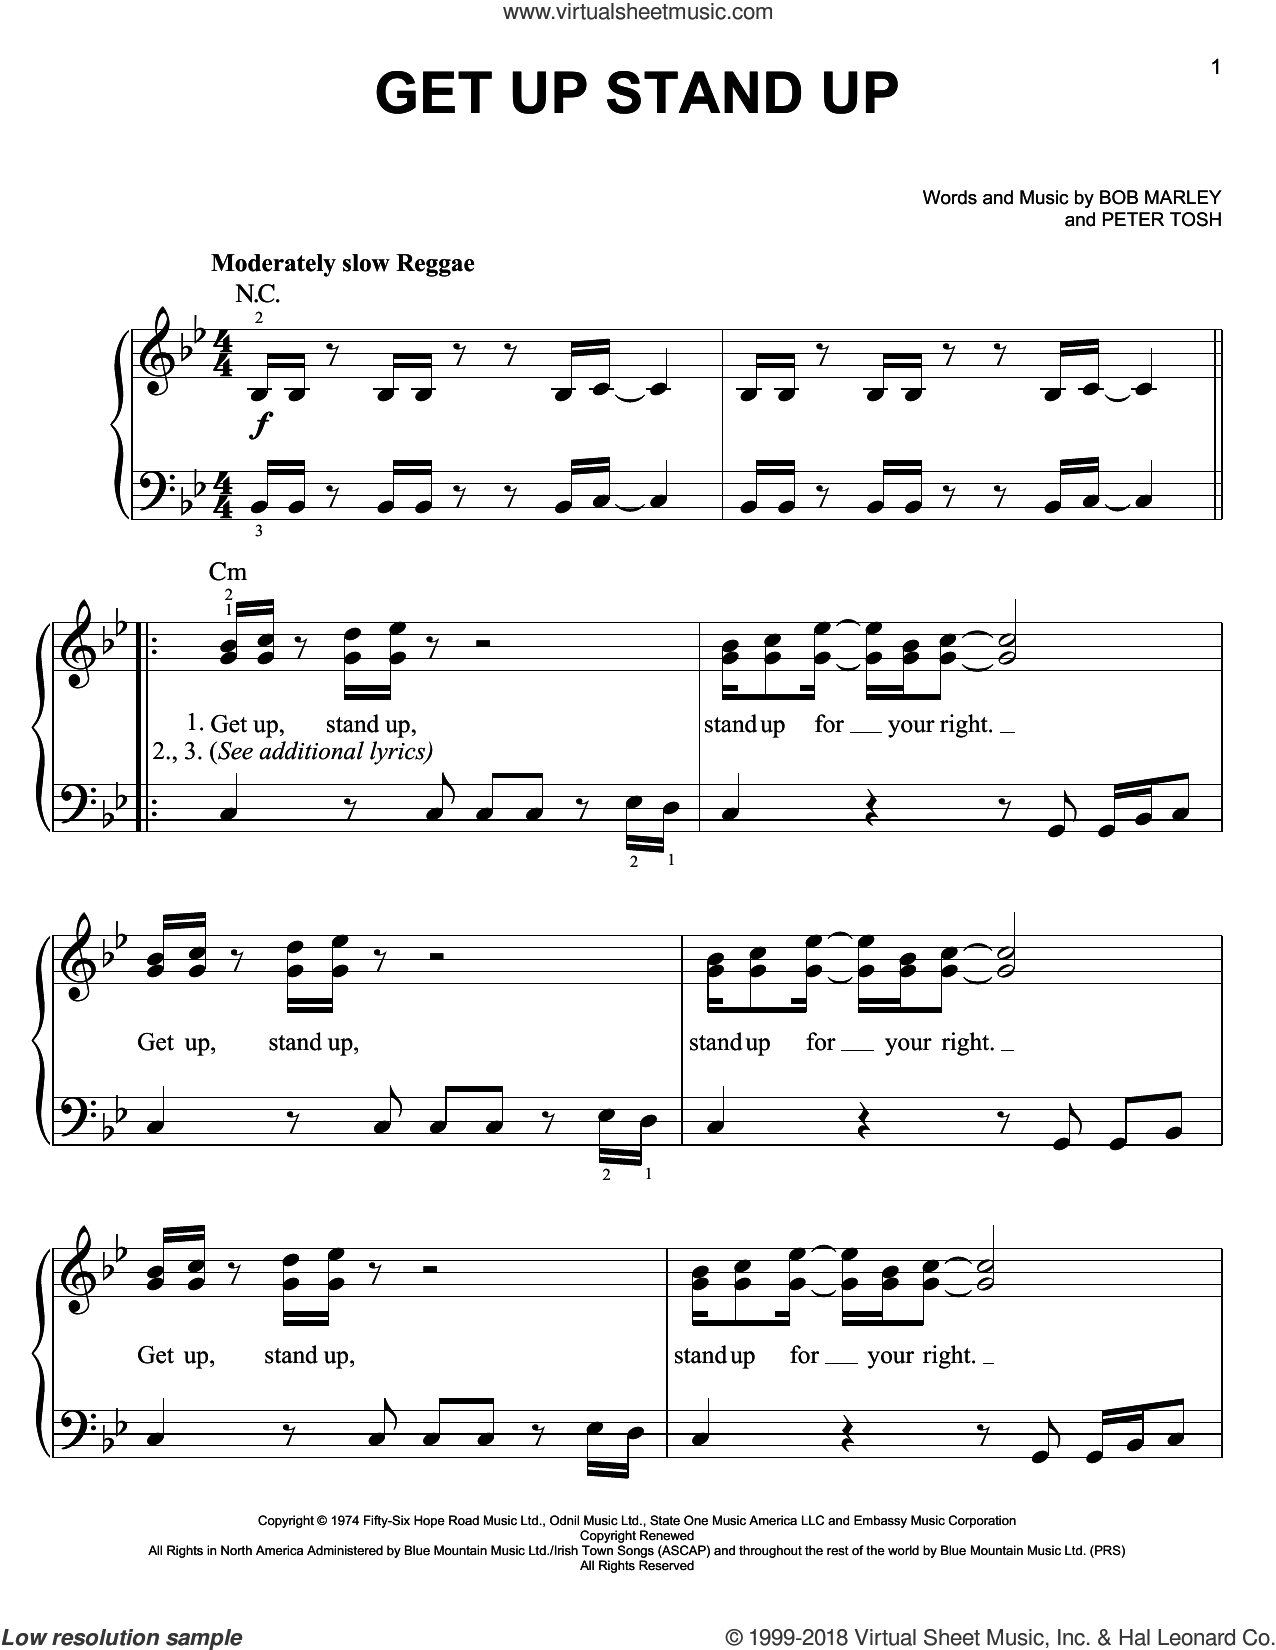 Get Up Stand Up sheet music for piano solo by Bob Marley and Peter Tosh, easy skill level